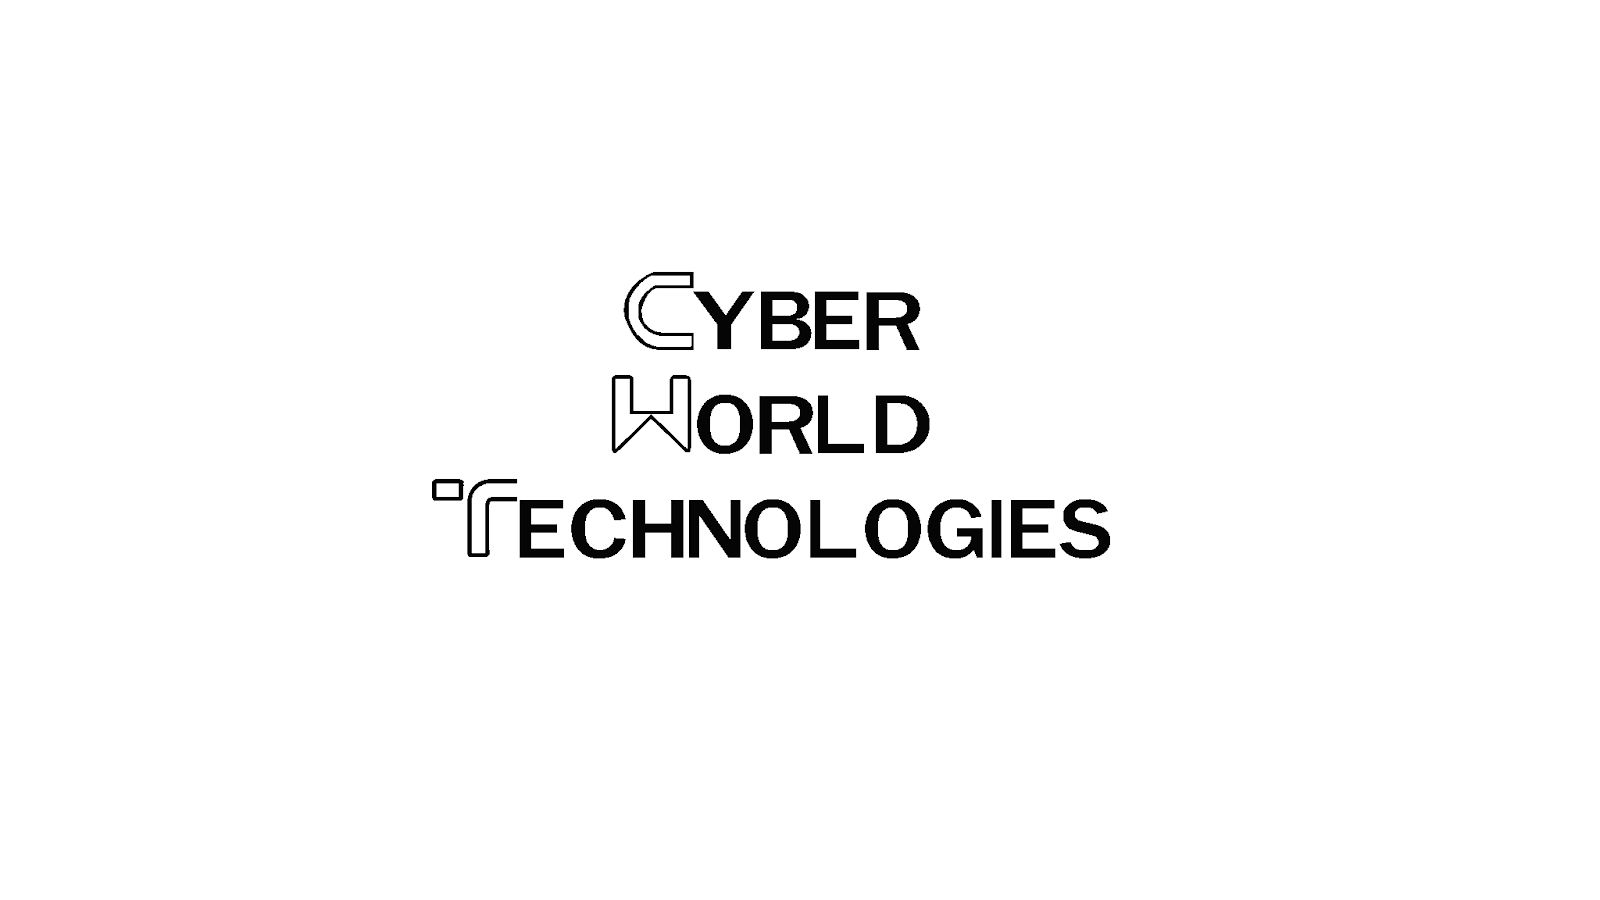 Cyber World Technologies